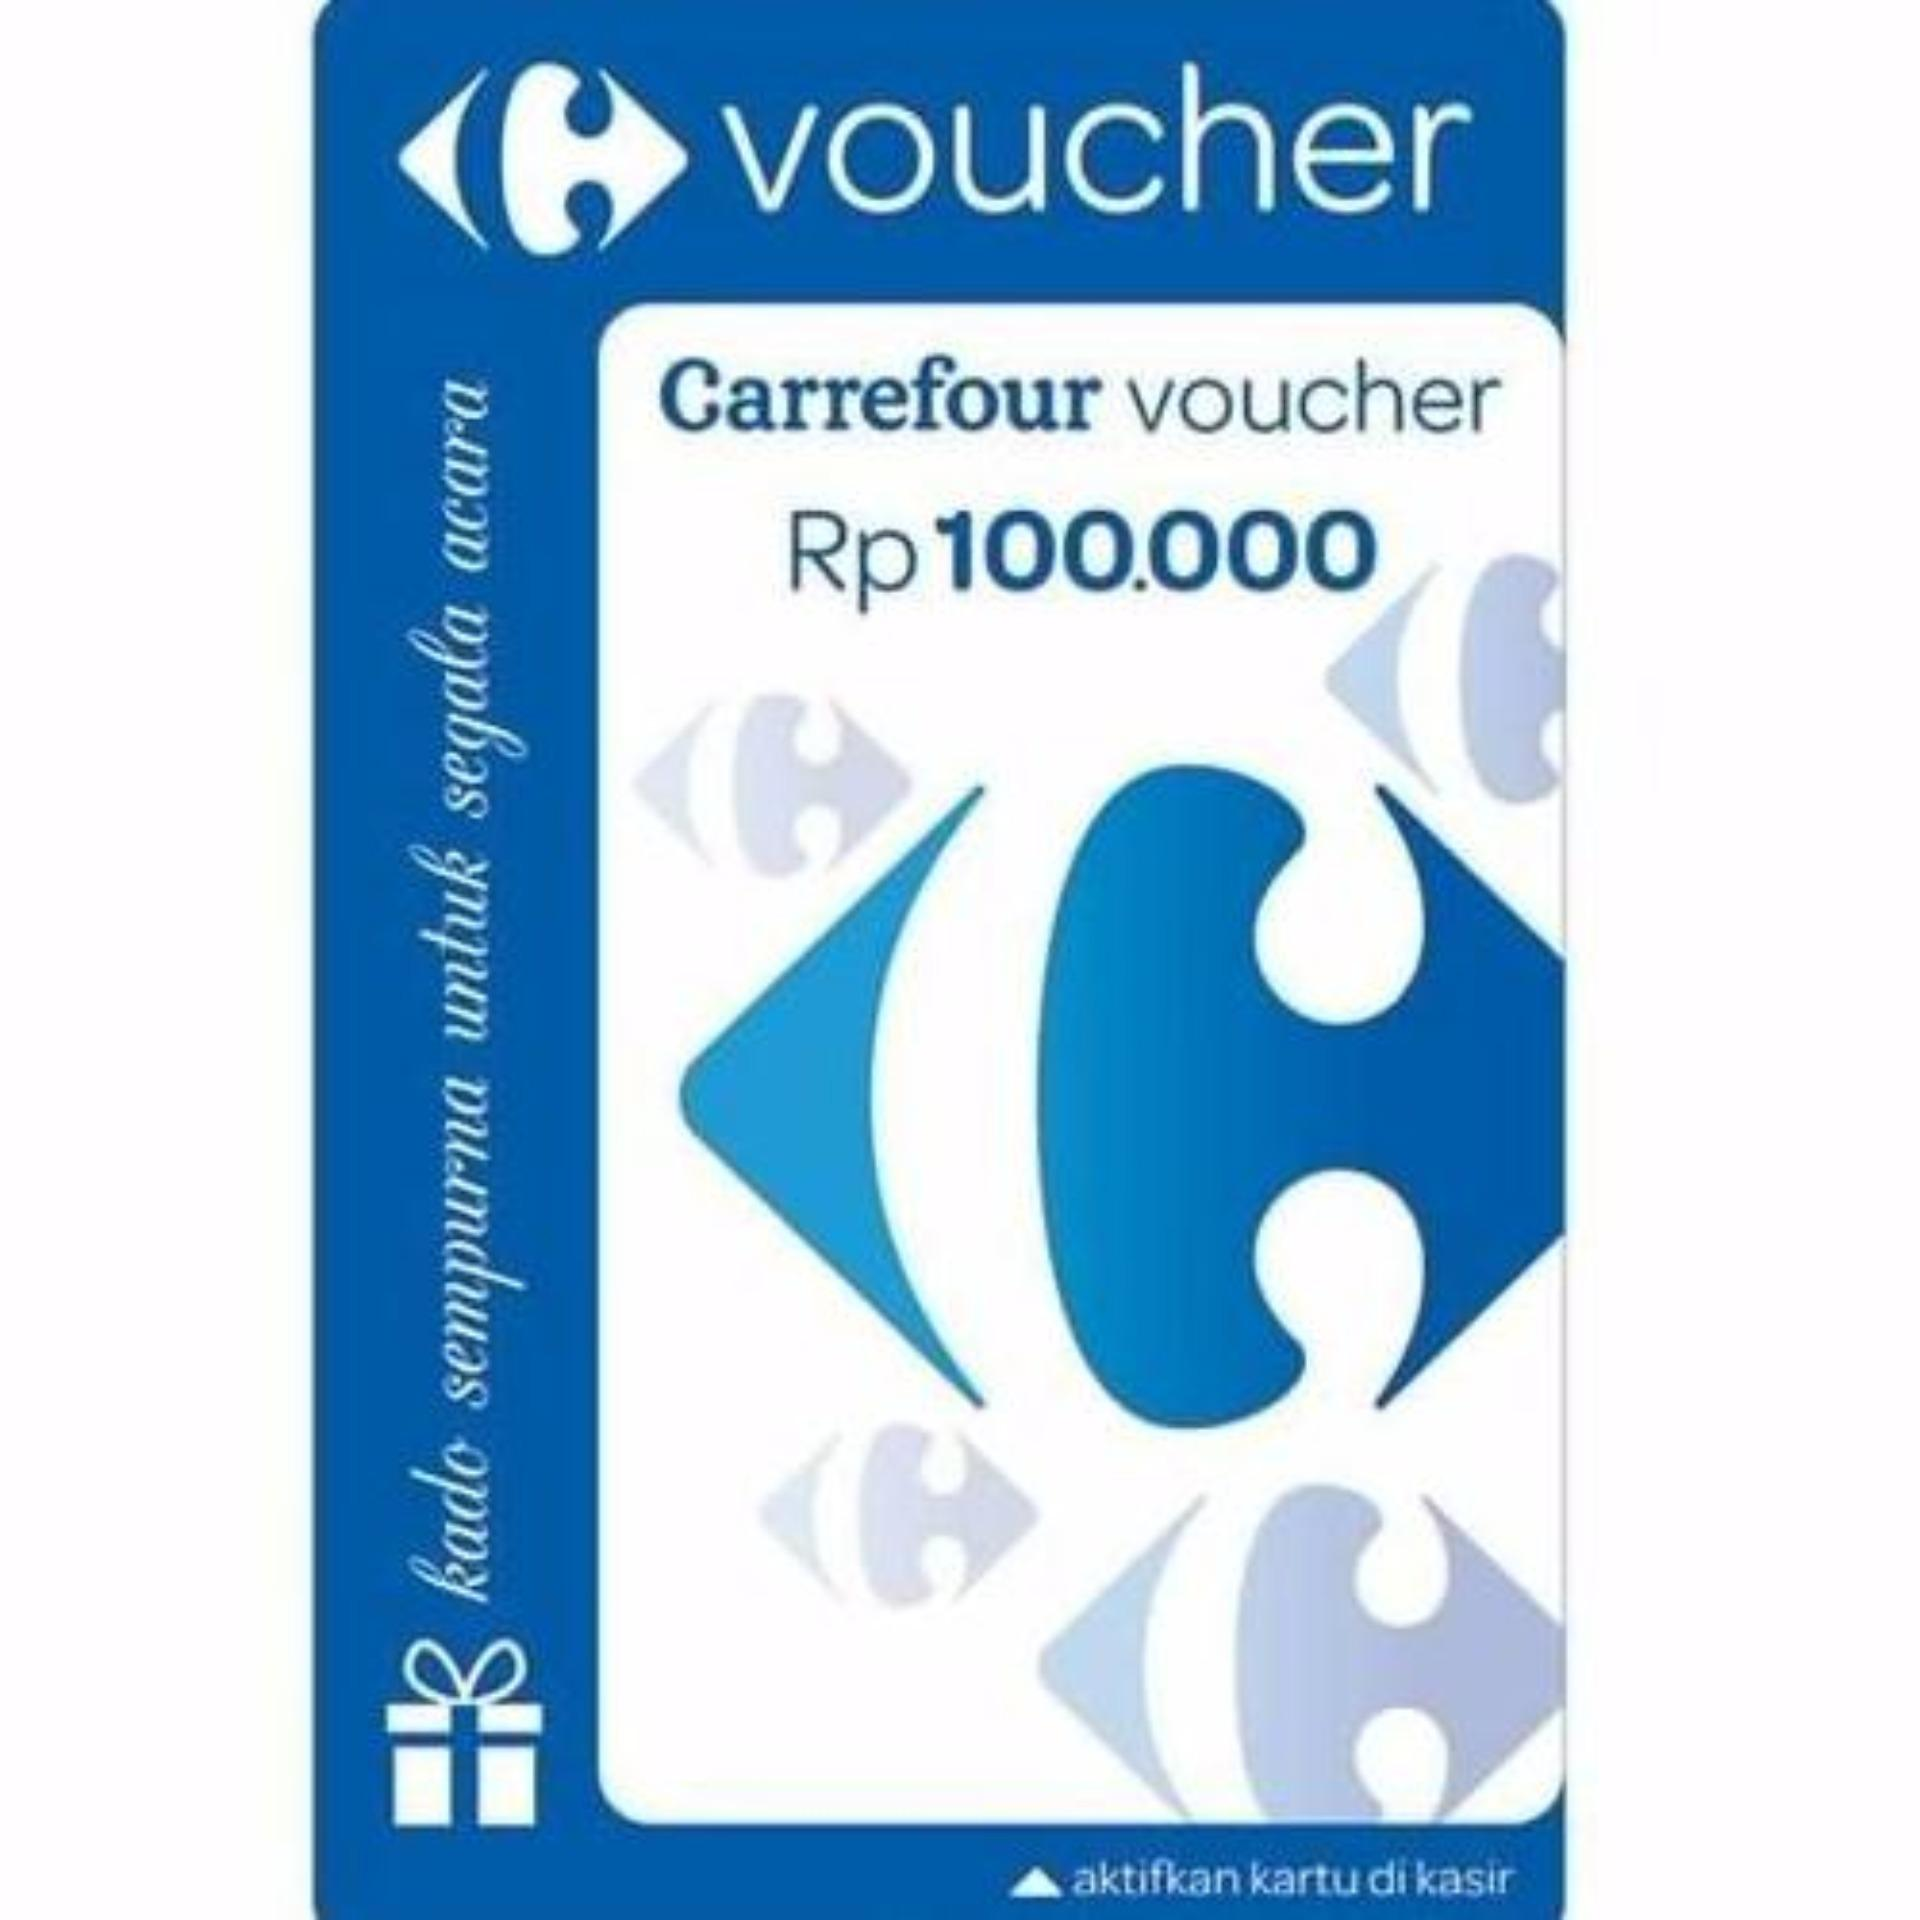 Voucher Carrefour nominal 1jt